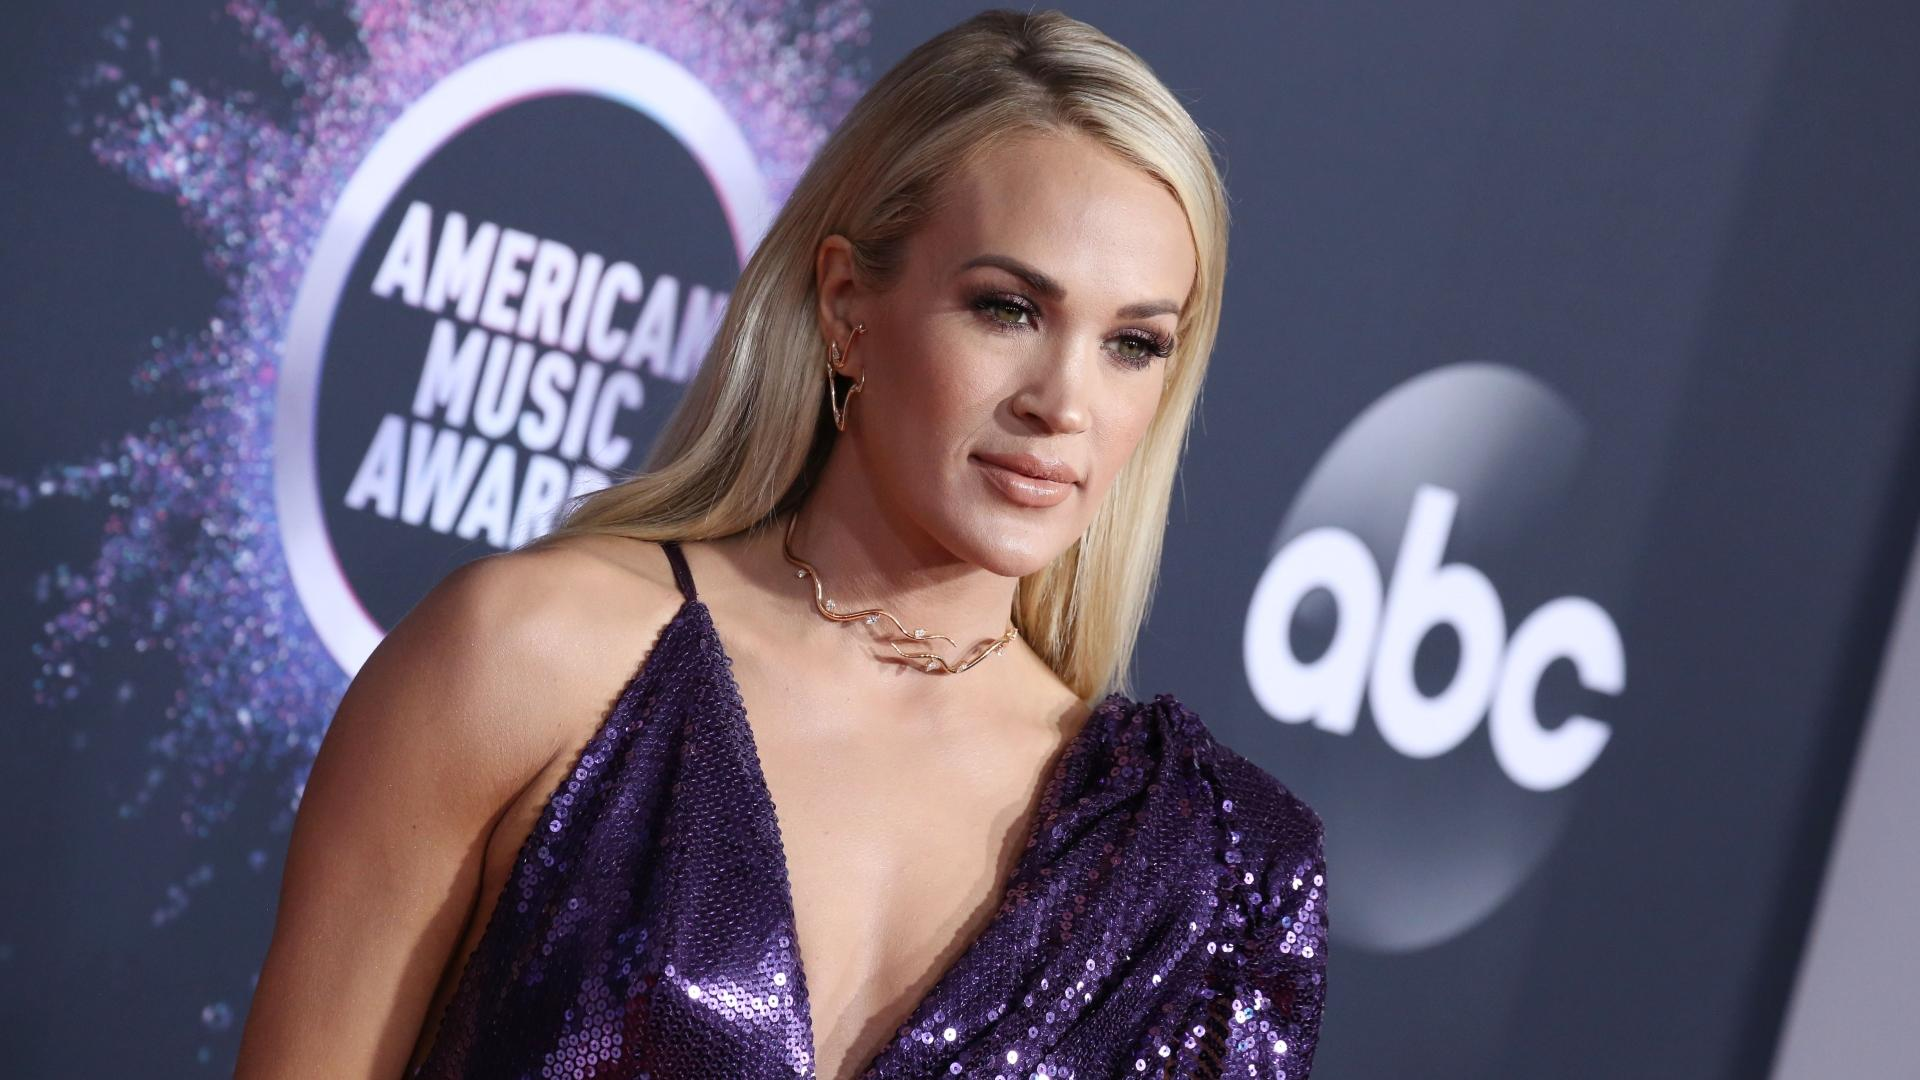 Carrie Underwood Says Her Family Hid In A Safe Room During Deadly Nashville Tornado